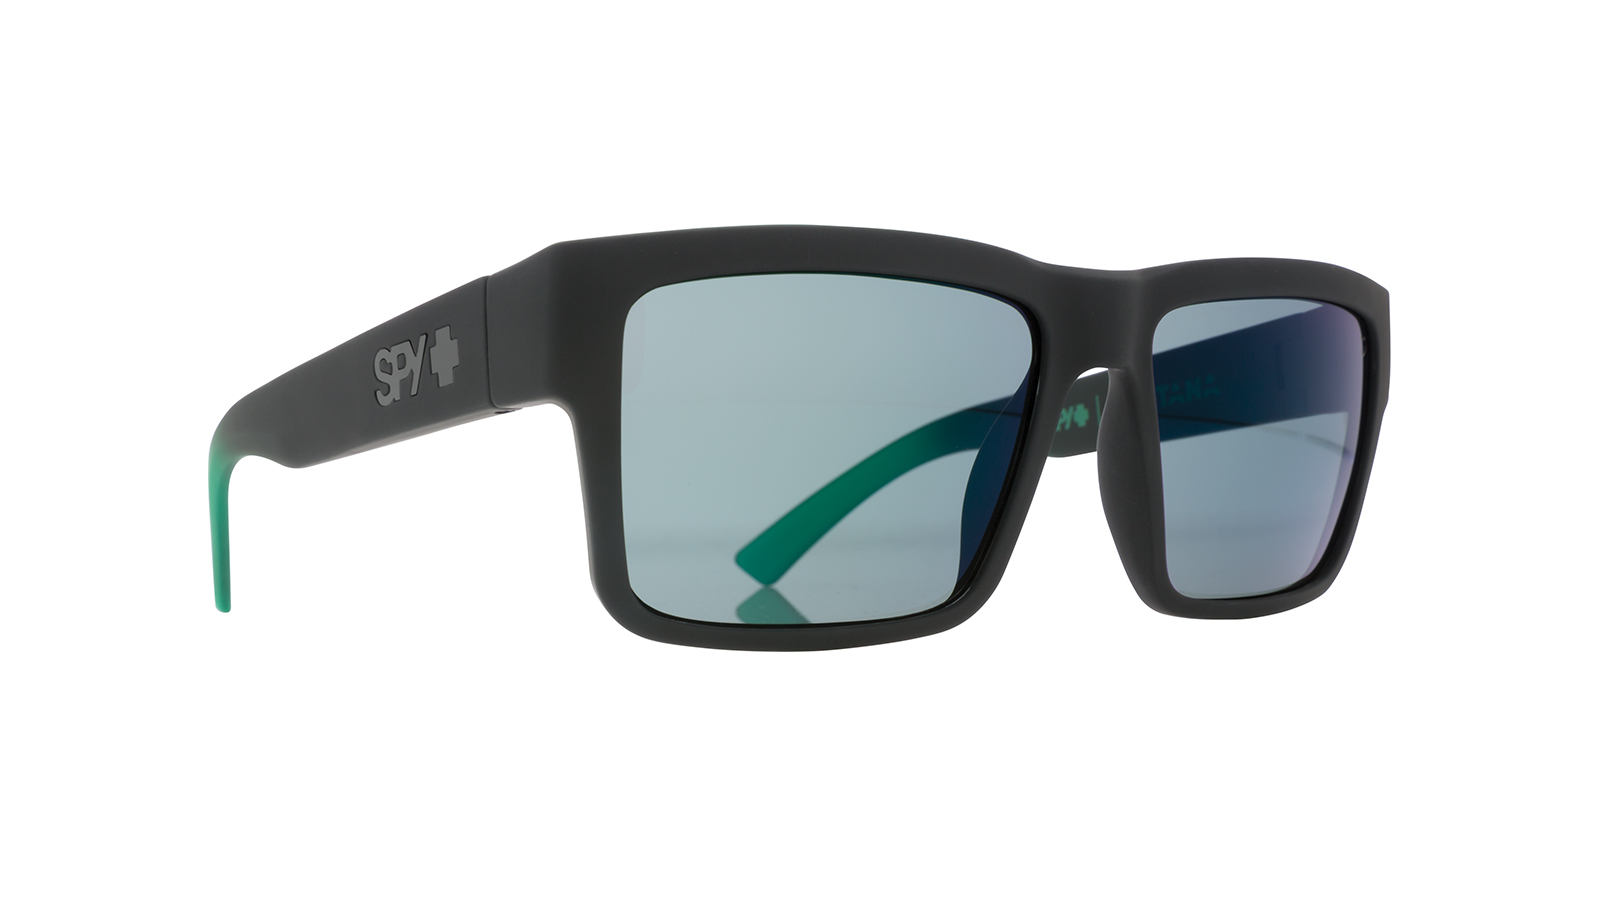 9acd2b97b67 SPY MONTANA SOFTMATTEBLACKwGREENFADE HAPPYGRAYGREENwGREENFLASH 673407843695-01.  SPY